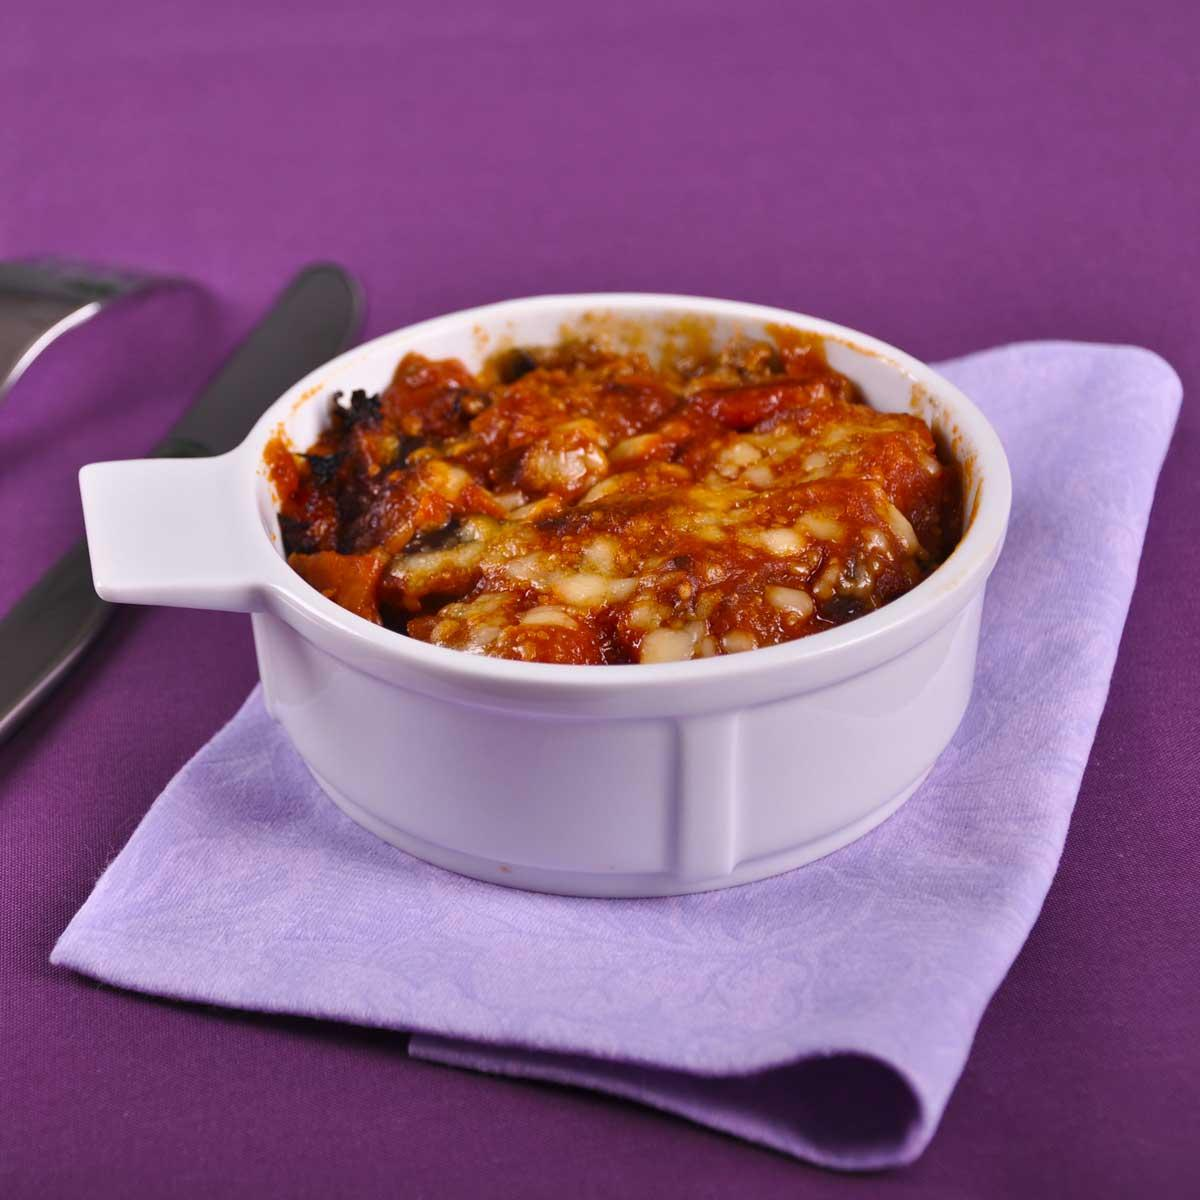 Moussaka all g e une recette week end cuisine le figaro madame - Cuisine normande traditionnelle ...